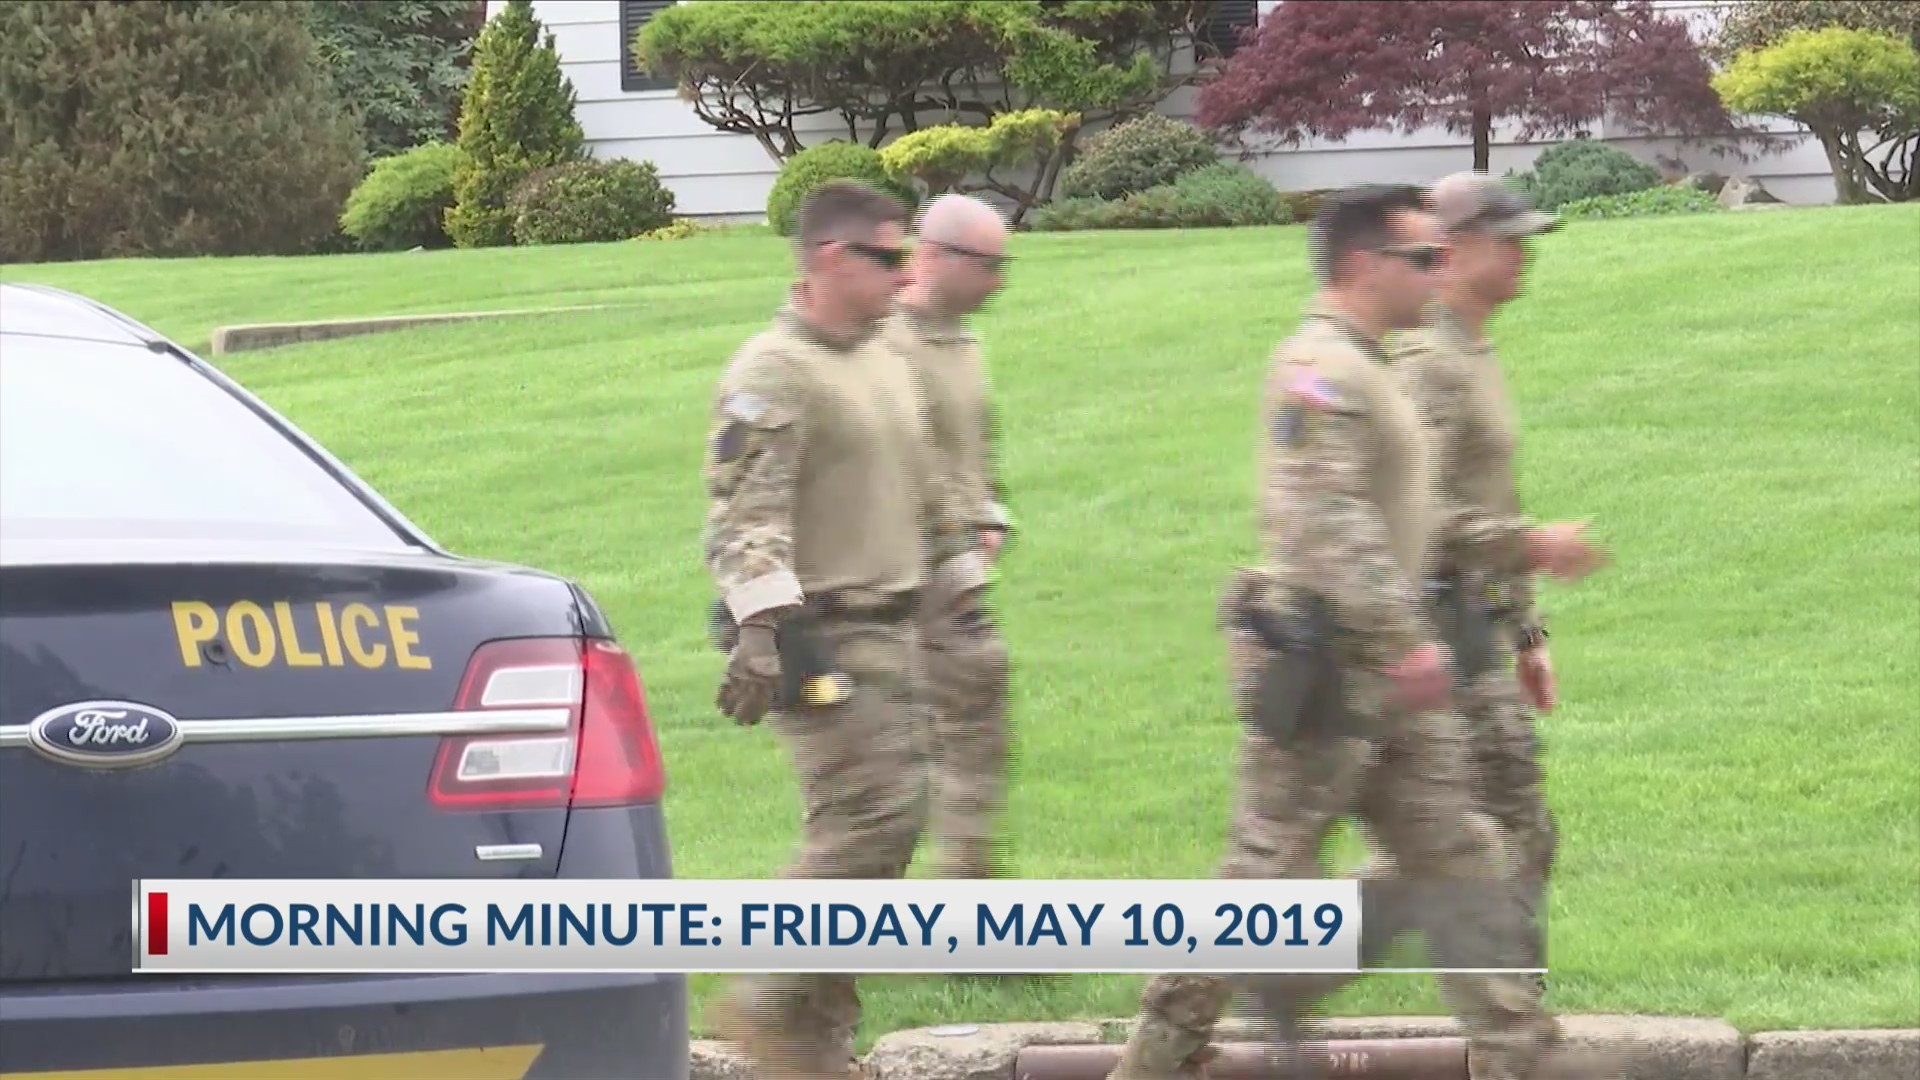 Morning Minute: Friday, May 10, 2019